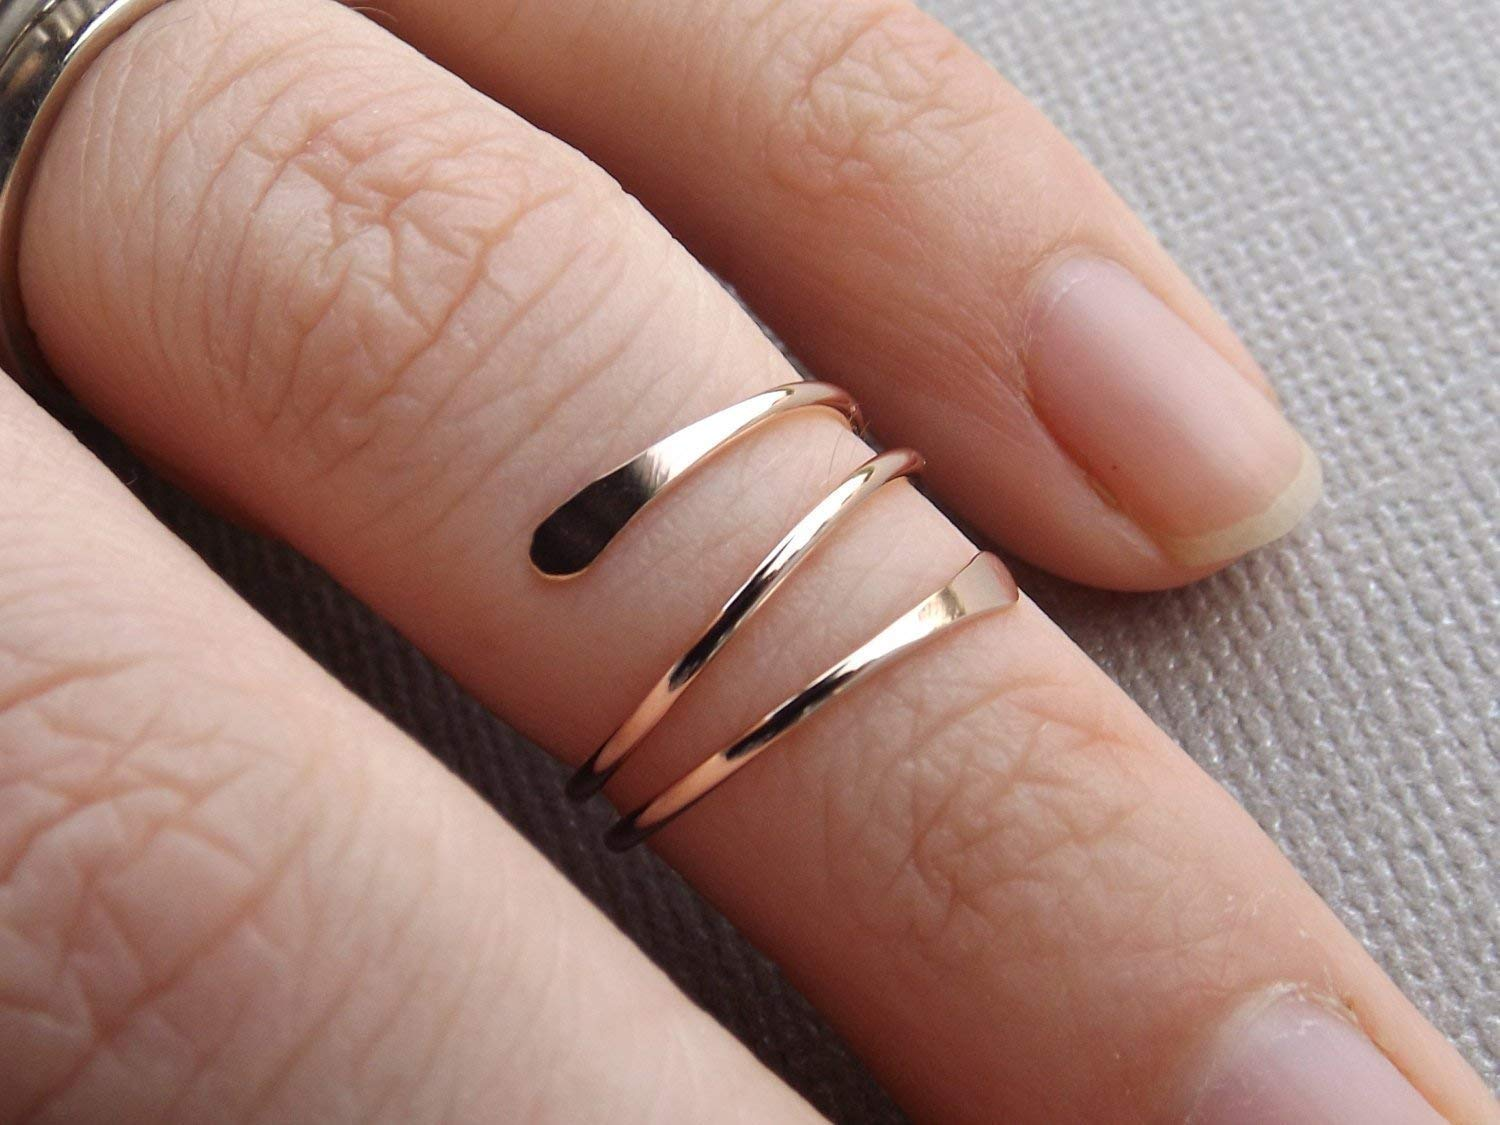 14k Gold or Rose Fill Knuckle Ring, Knuckle Rings,Mid Rings,Above knuckle ring, Toe Rings, Rings, Rose or Gold Fill Knuckle Ring … 71vcNTtN1WL